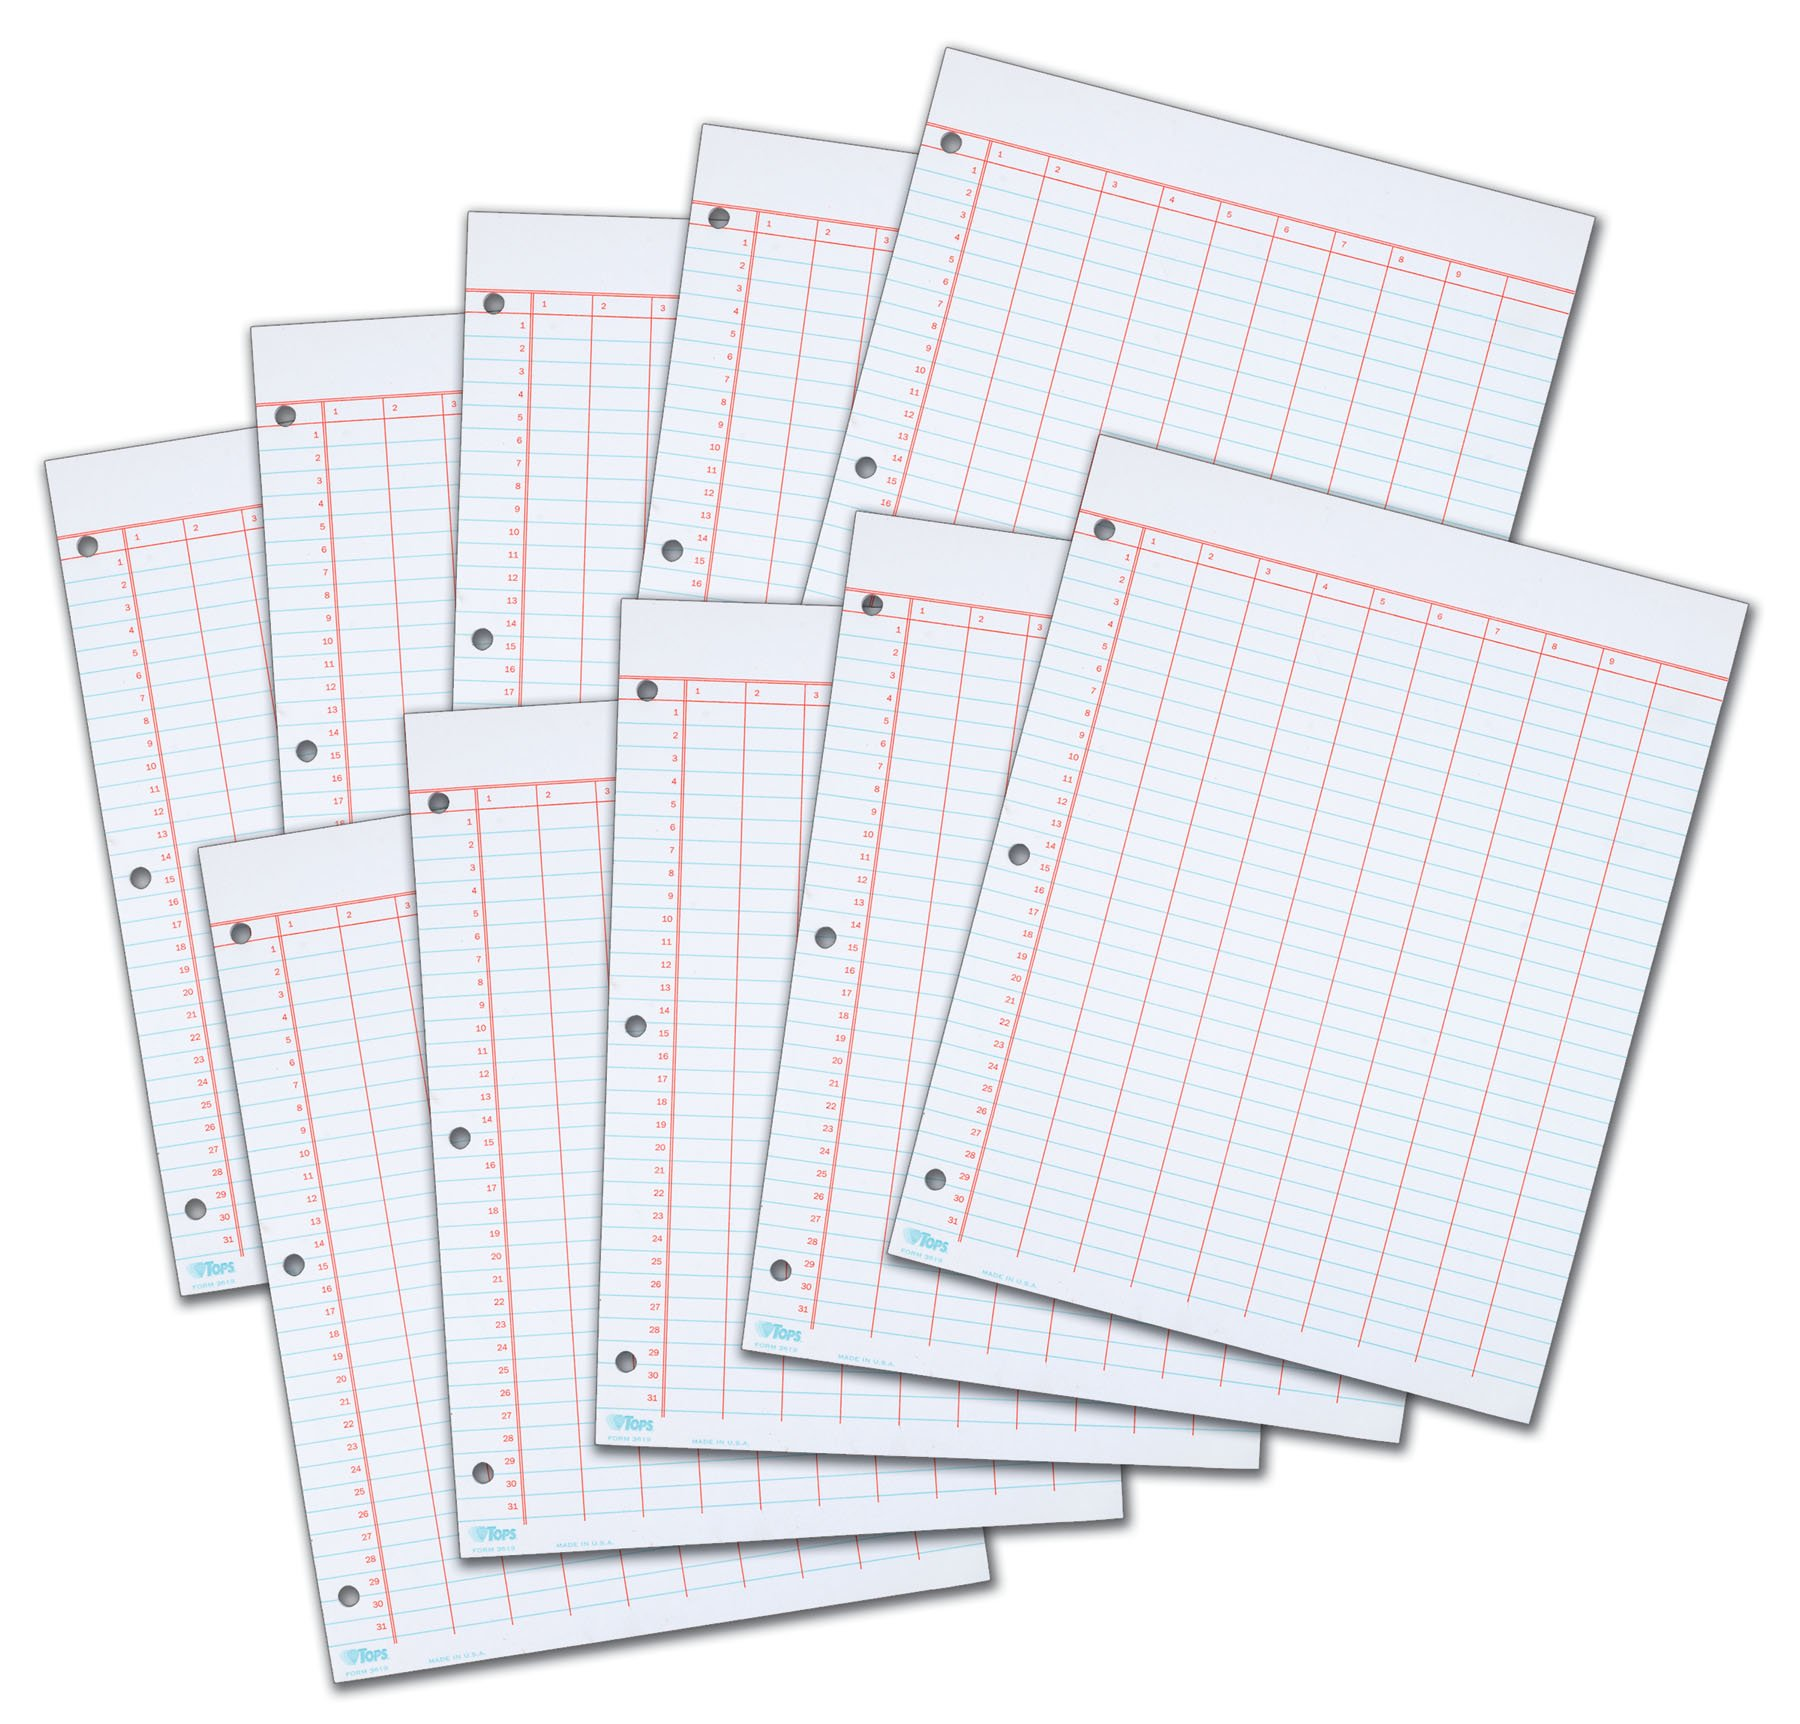 TOPS 3619 Data Pad w/Numbered Column Headings, 11 x 8 1/2, White, 50 Sheets